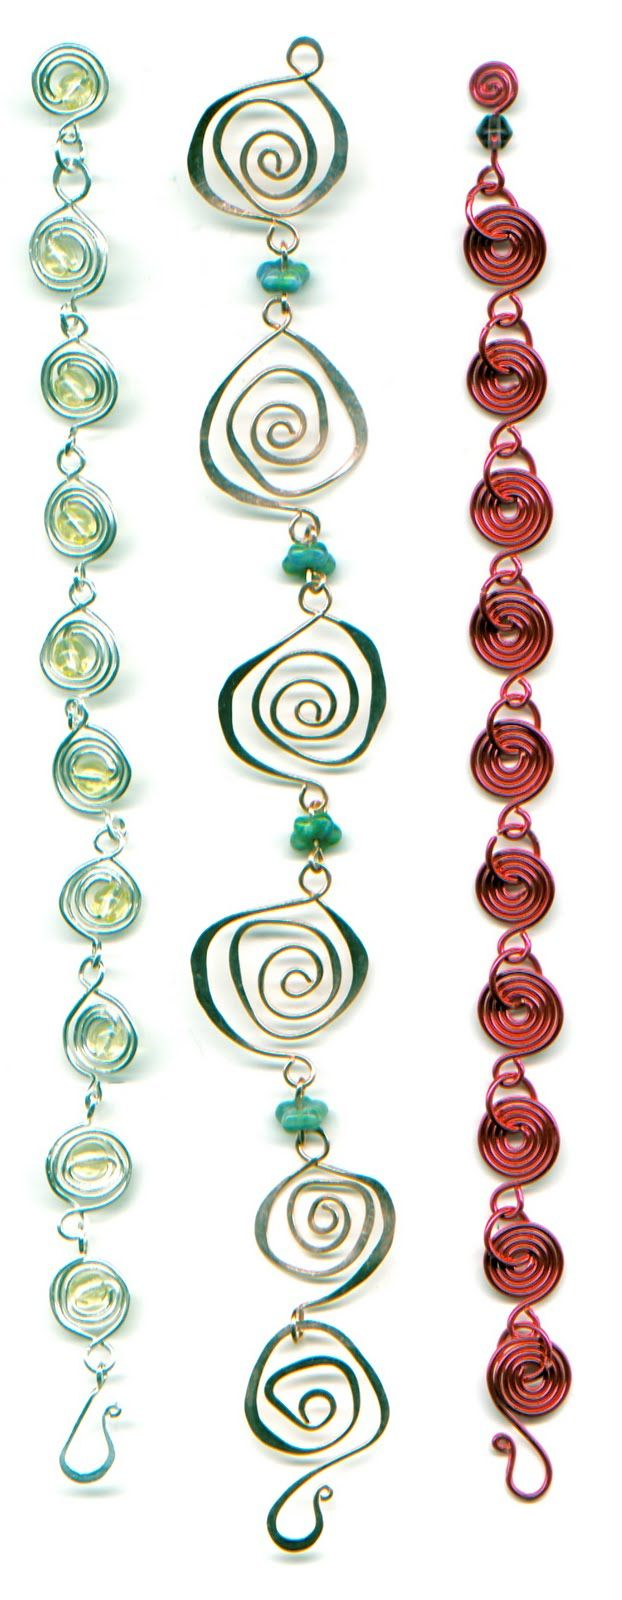 WireWorkers Guild  Lots of great chain ideas Me: The middle design inspires me to do something similar in a wind chime.